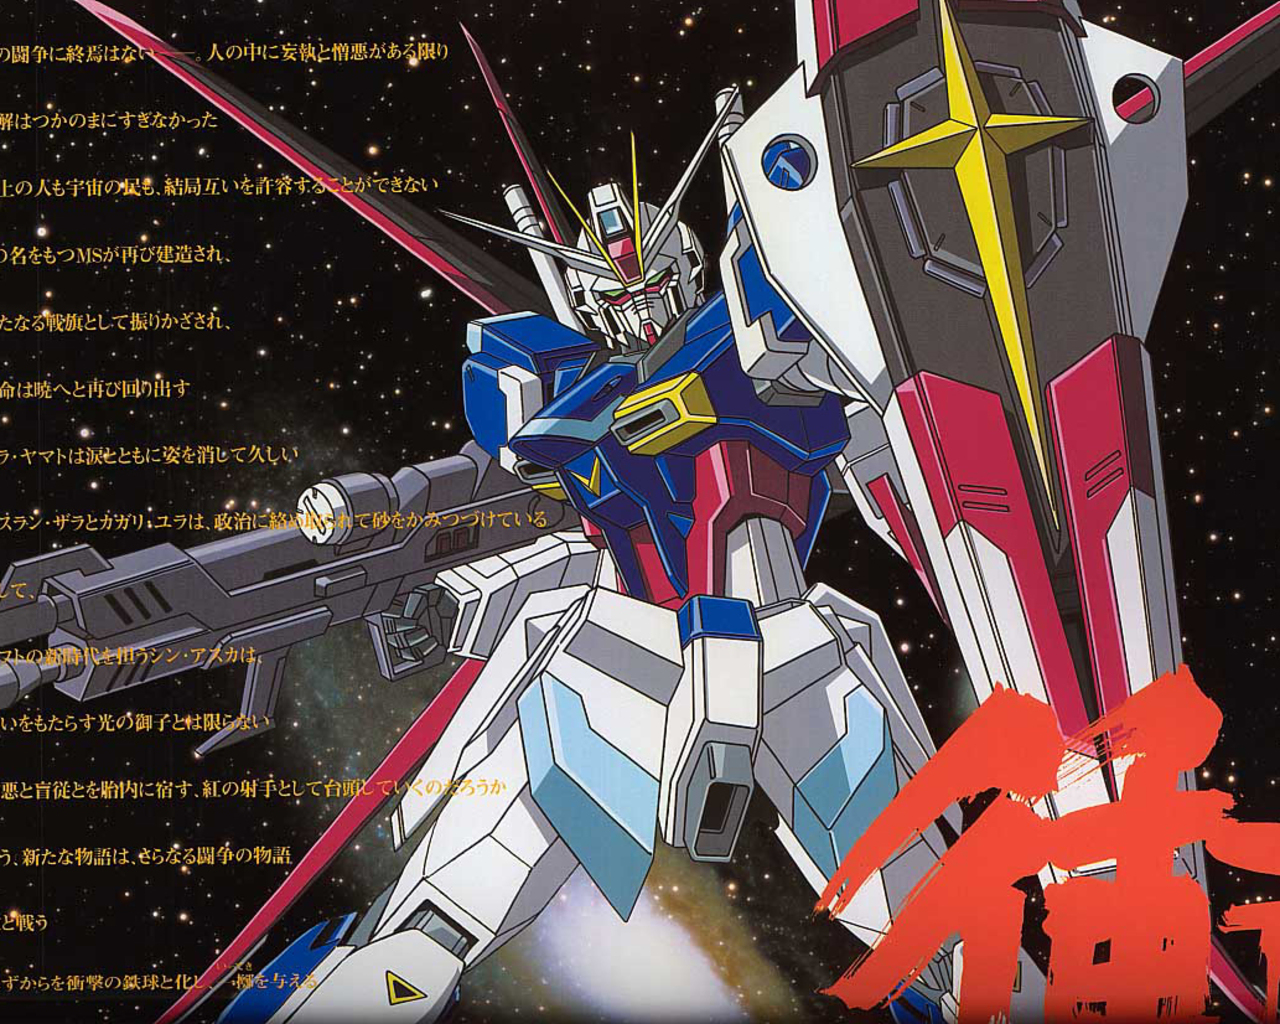 gundam mobile suit wallpaper Anime Forums Anime News More 1280x1024